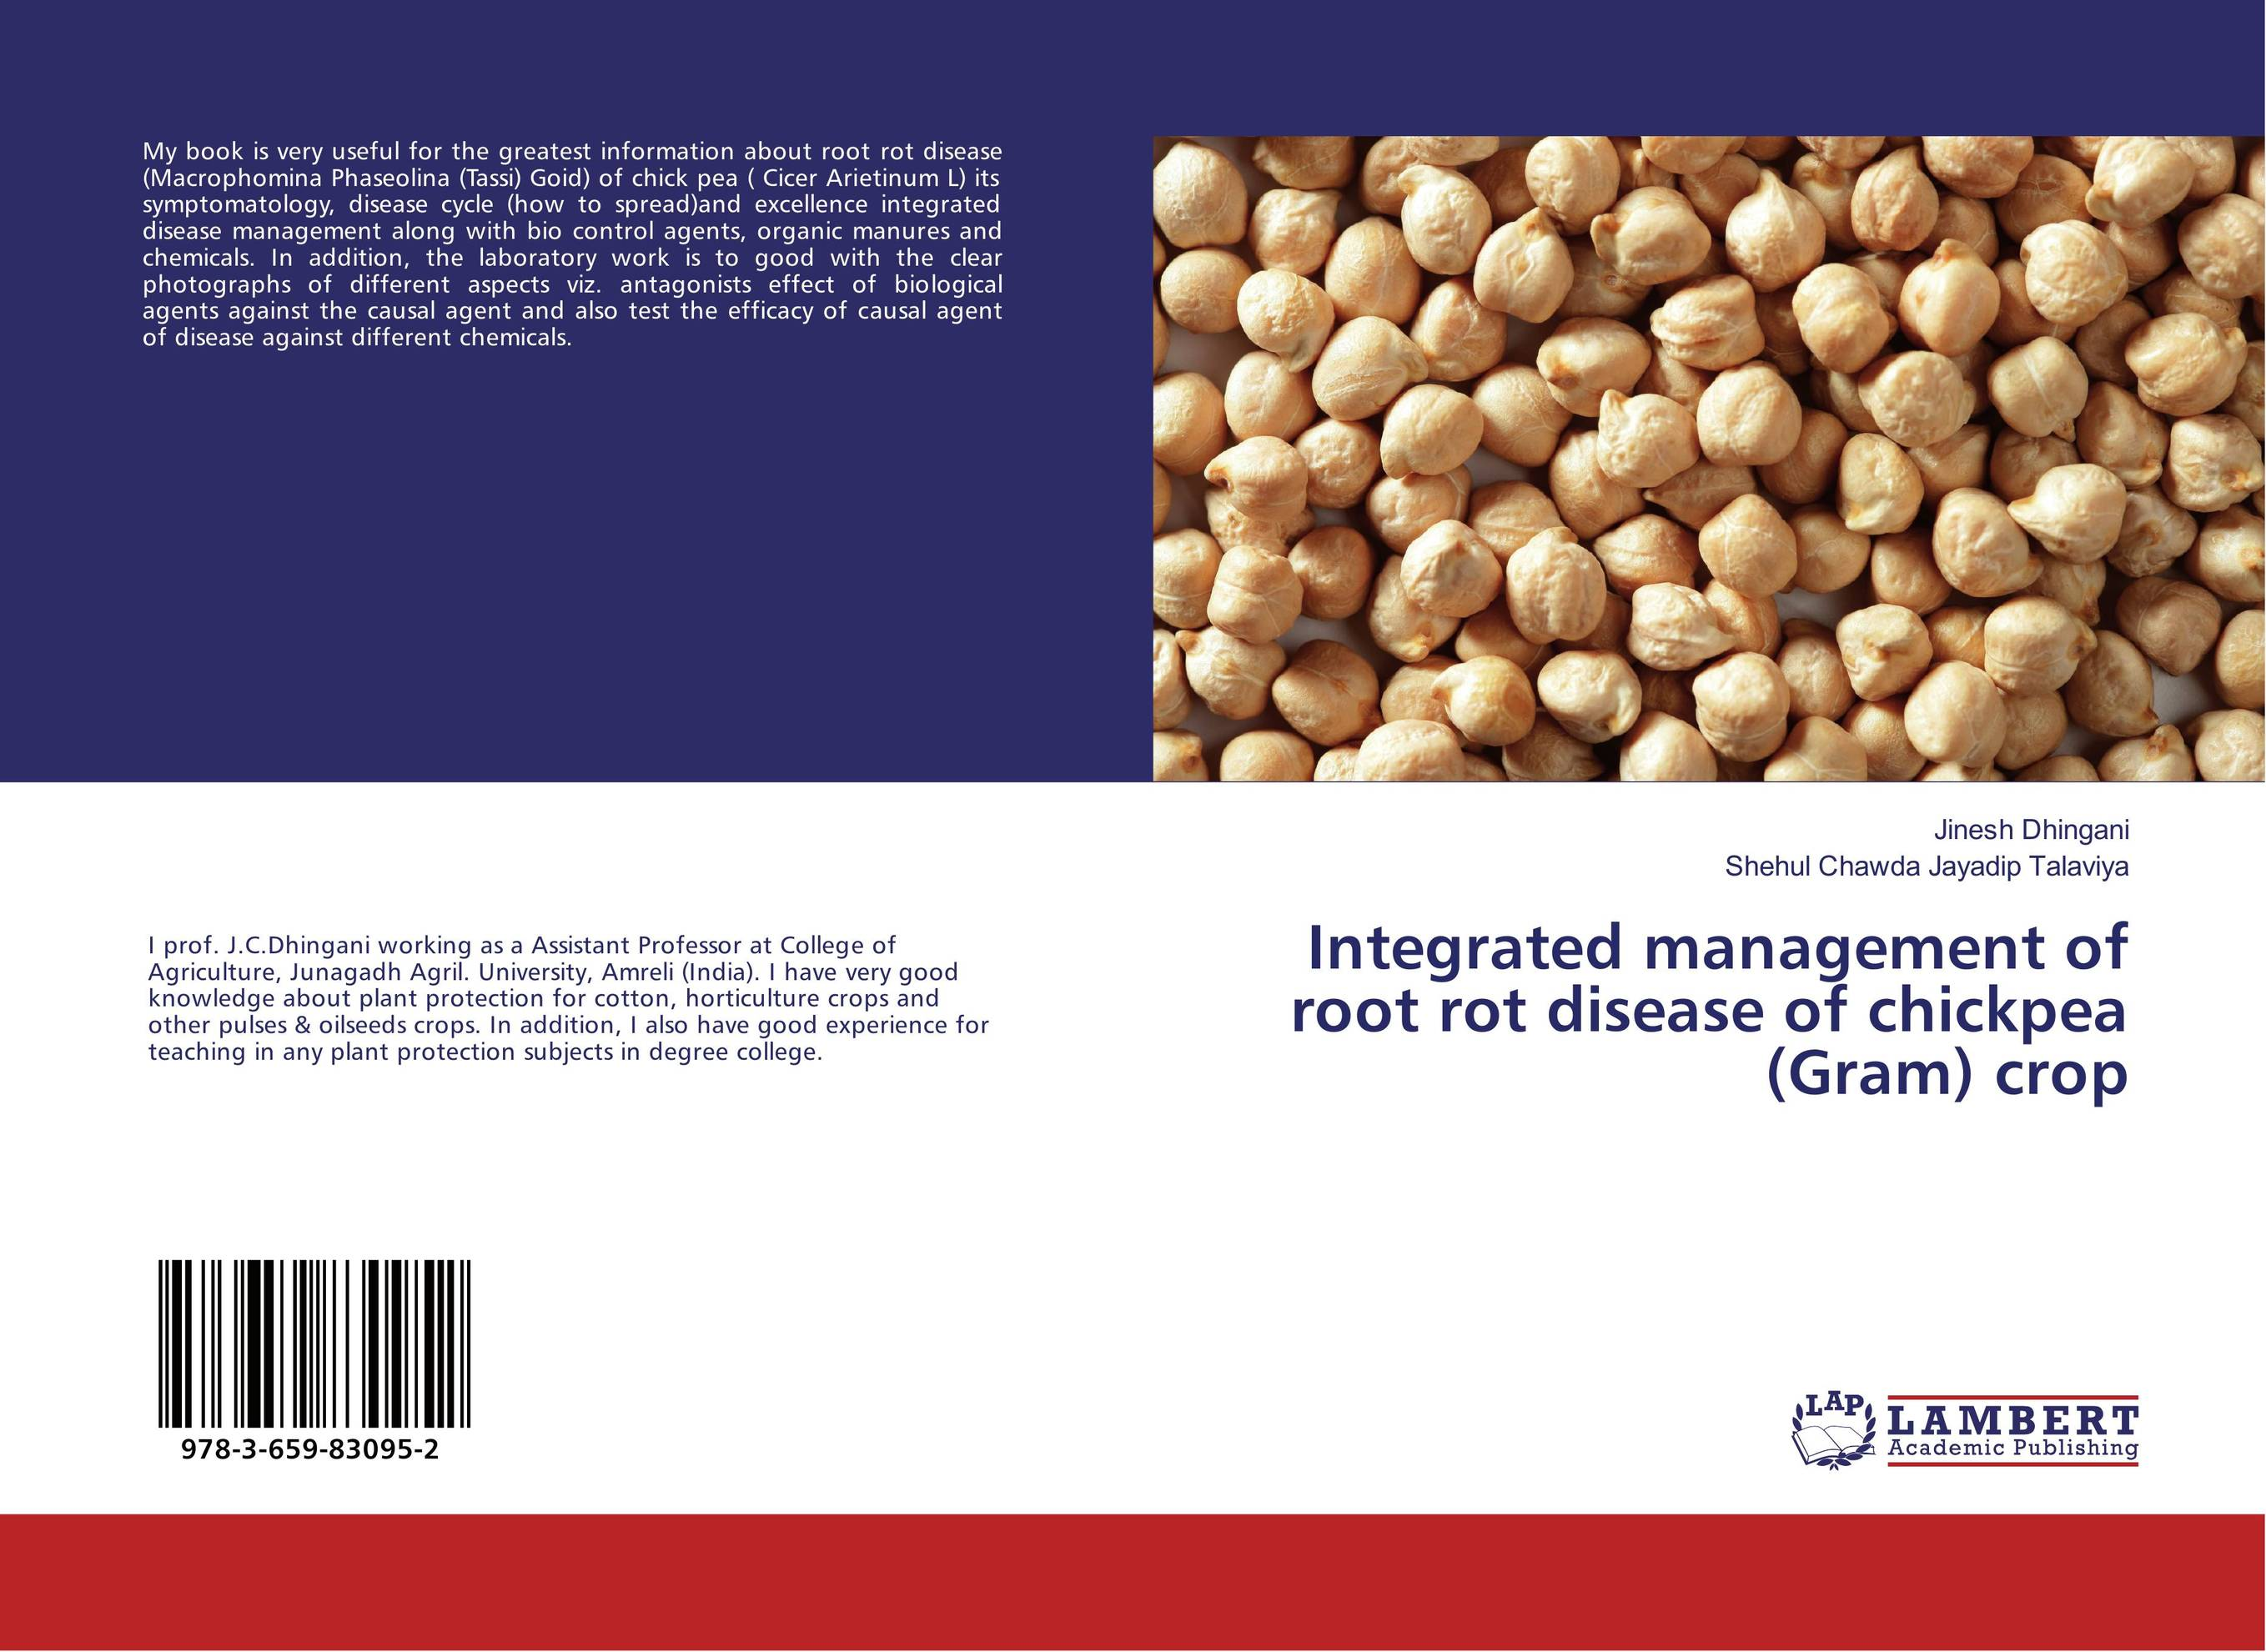 Integrated management of root rot disease of chickpea (Gram) crop h n gour pankaj sharma and rakesh kaushal pathological aspects and management of root rot of groundnut